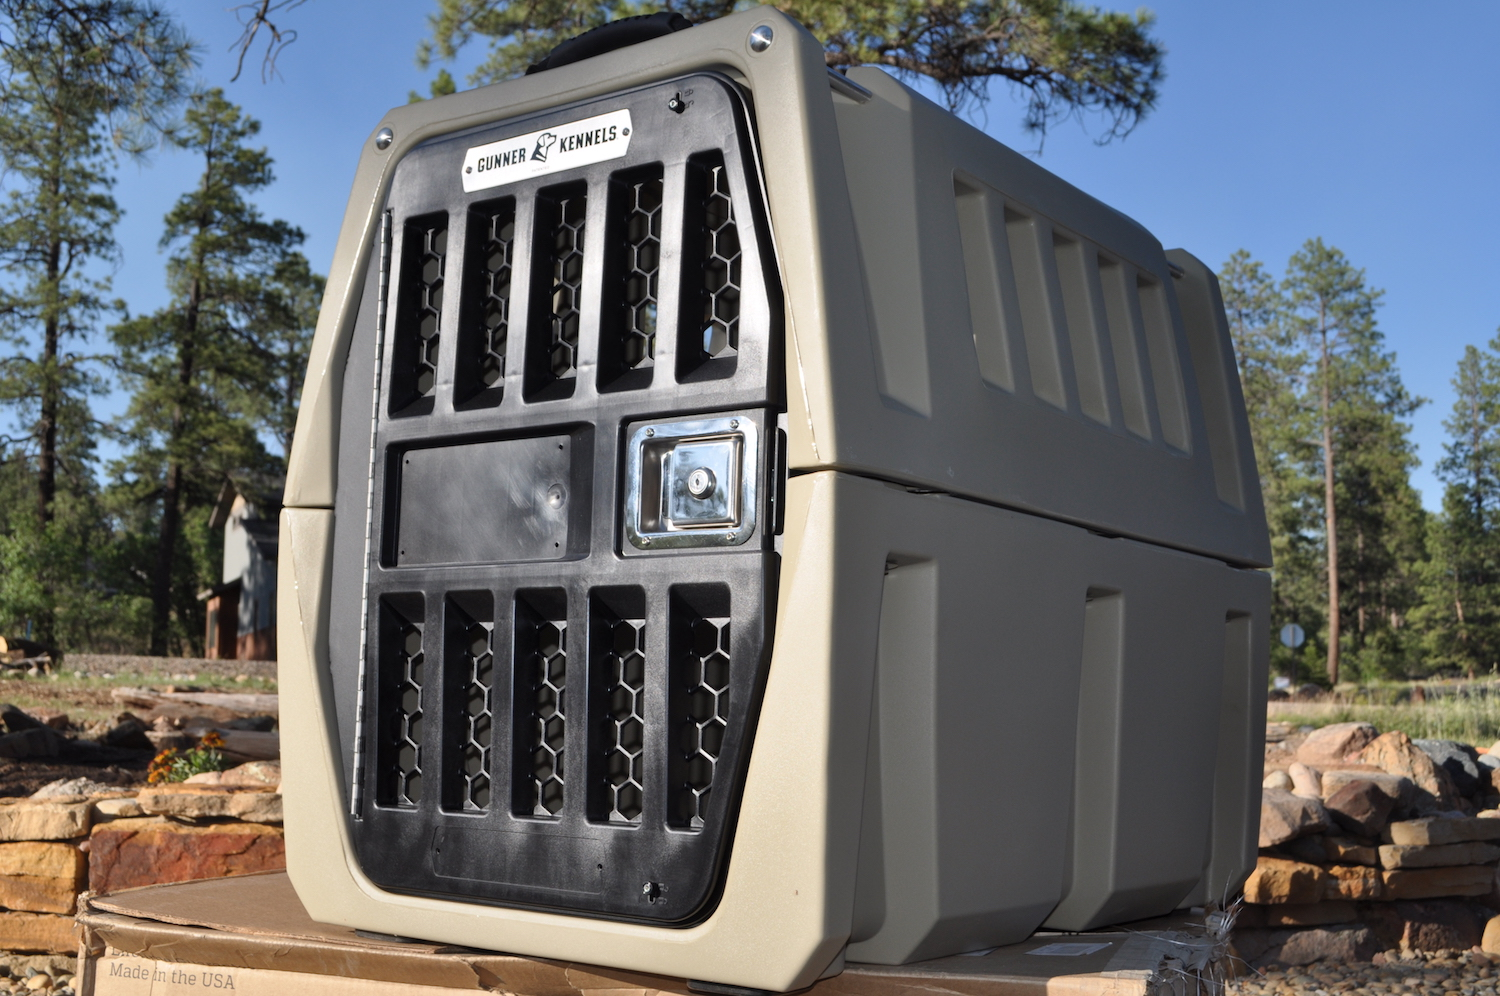 gunner kennels the 500 dog crate worth every penny gearjunkie